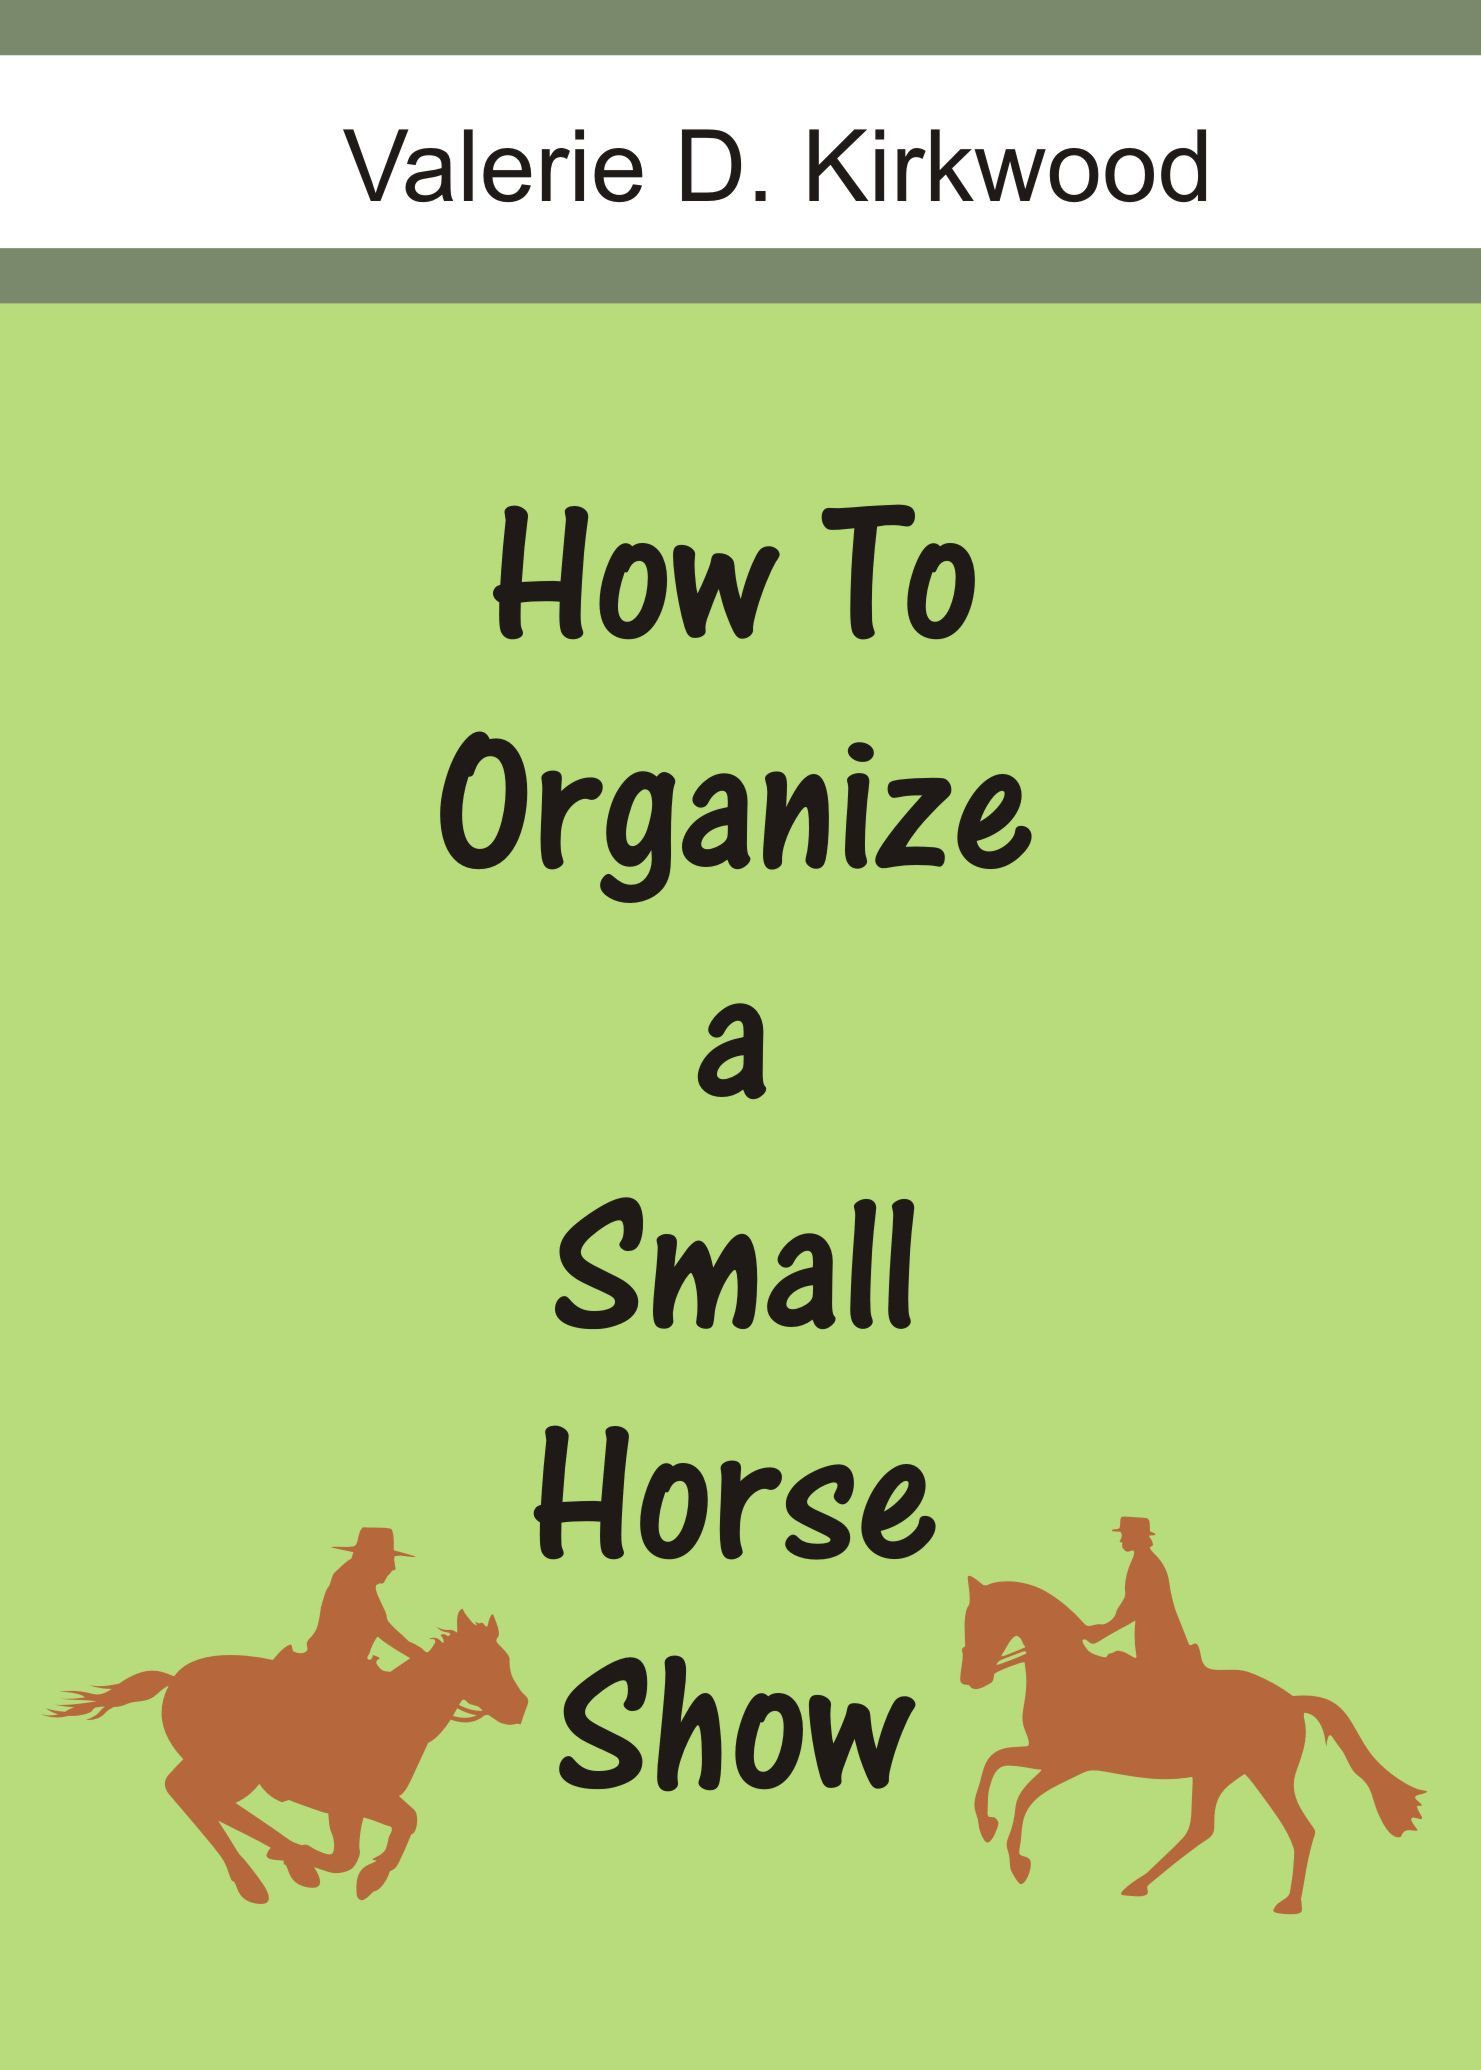 How To Organize a Small Horse Show